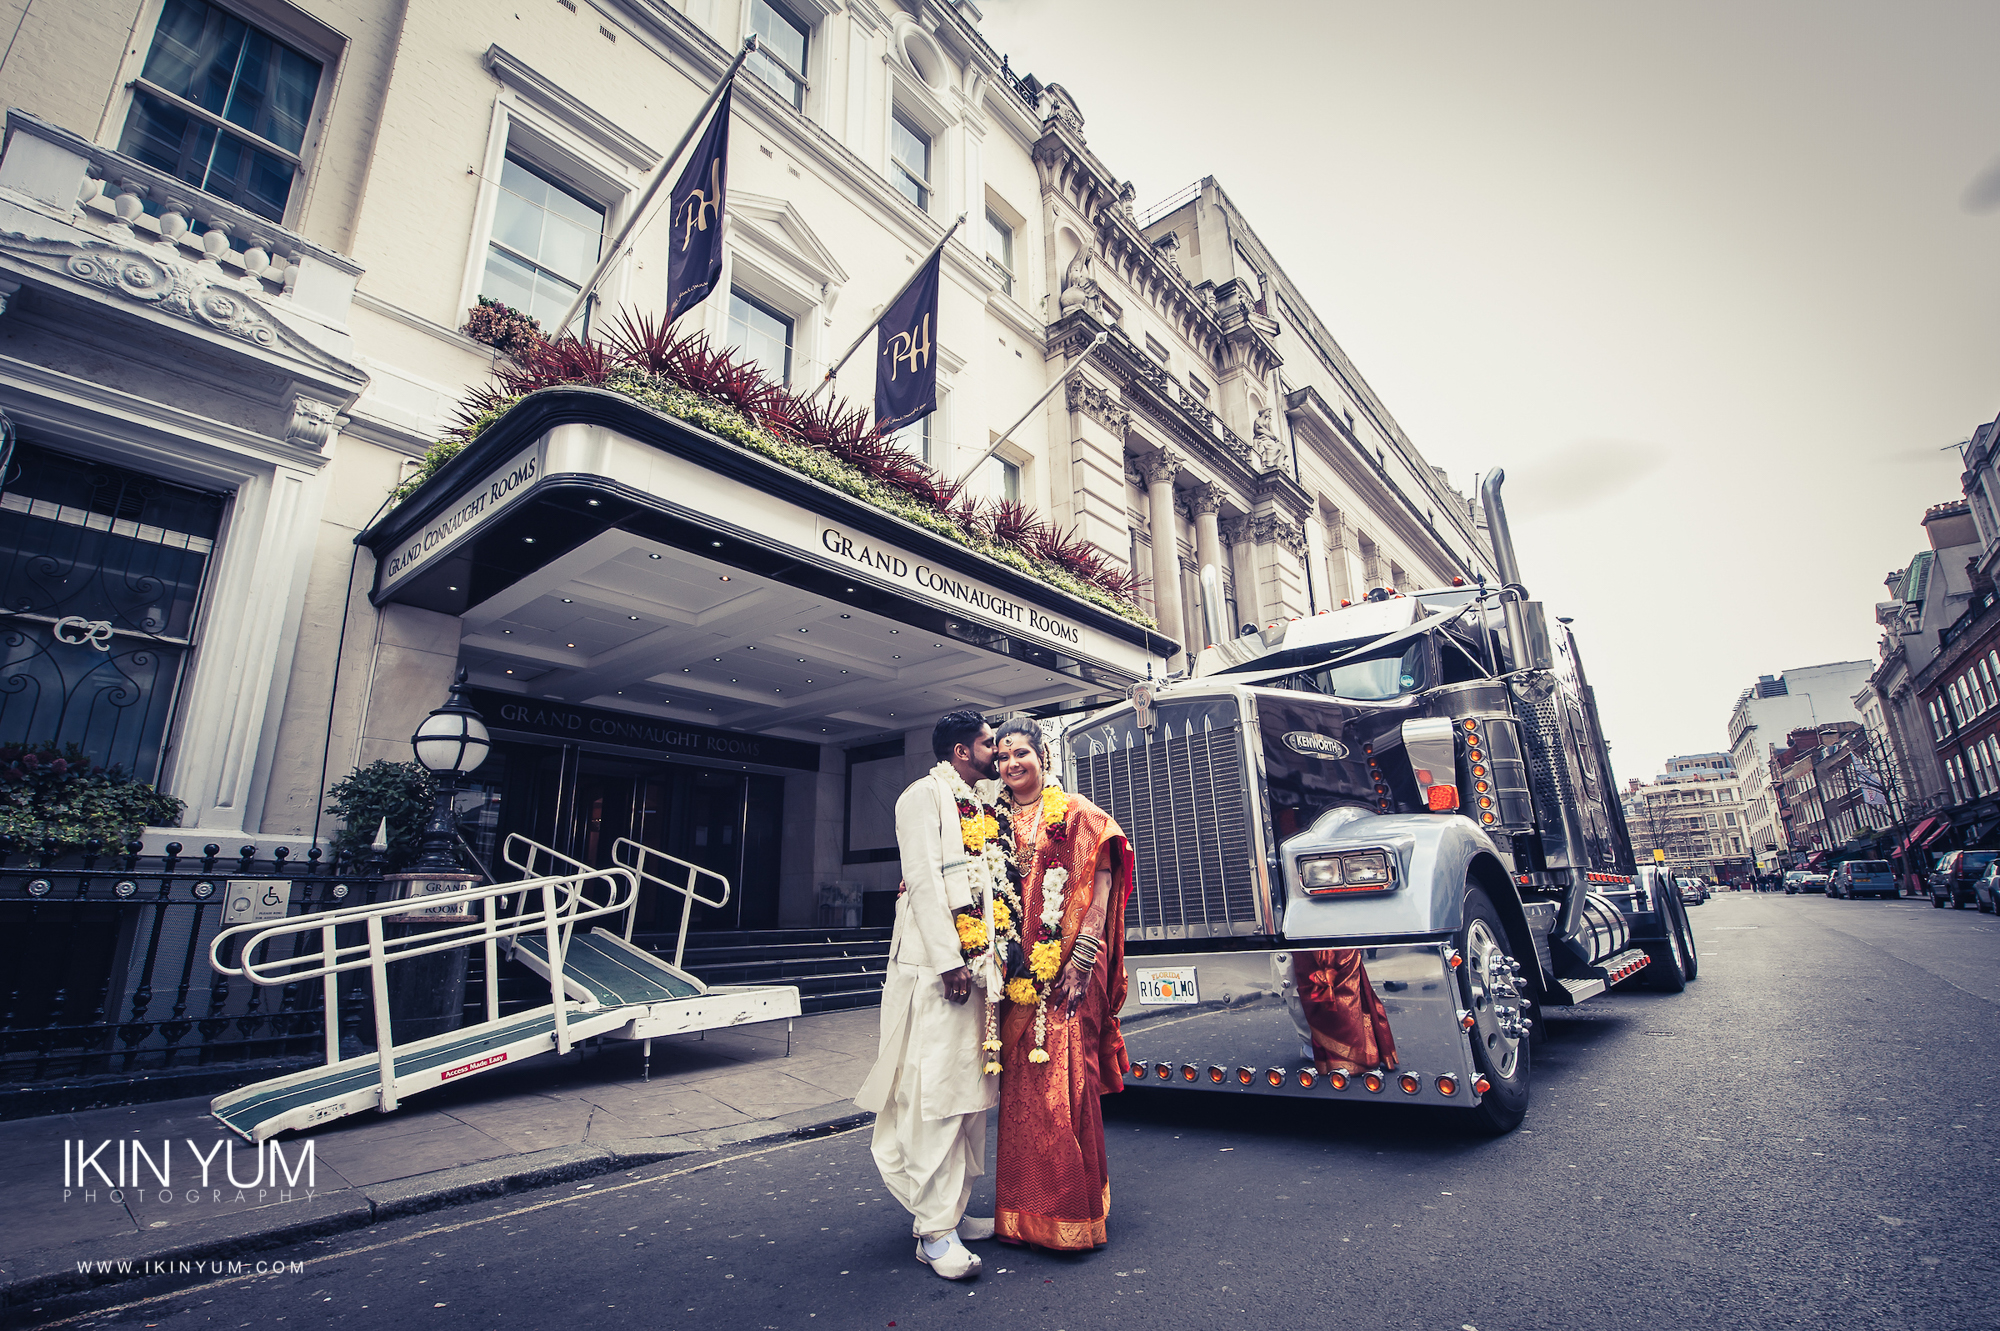 Grand Connaught Rooms Wedding - Minal & Raj - Ikin Yum Photography-078.jpg